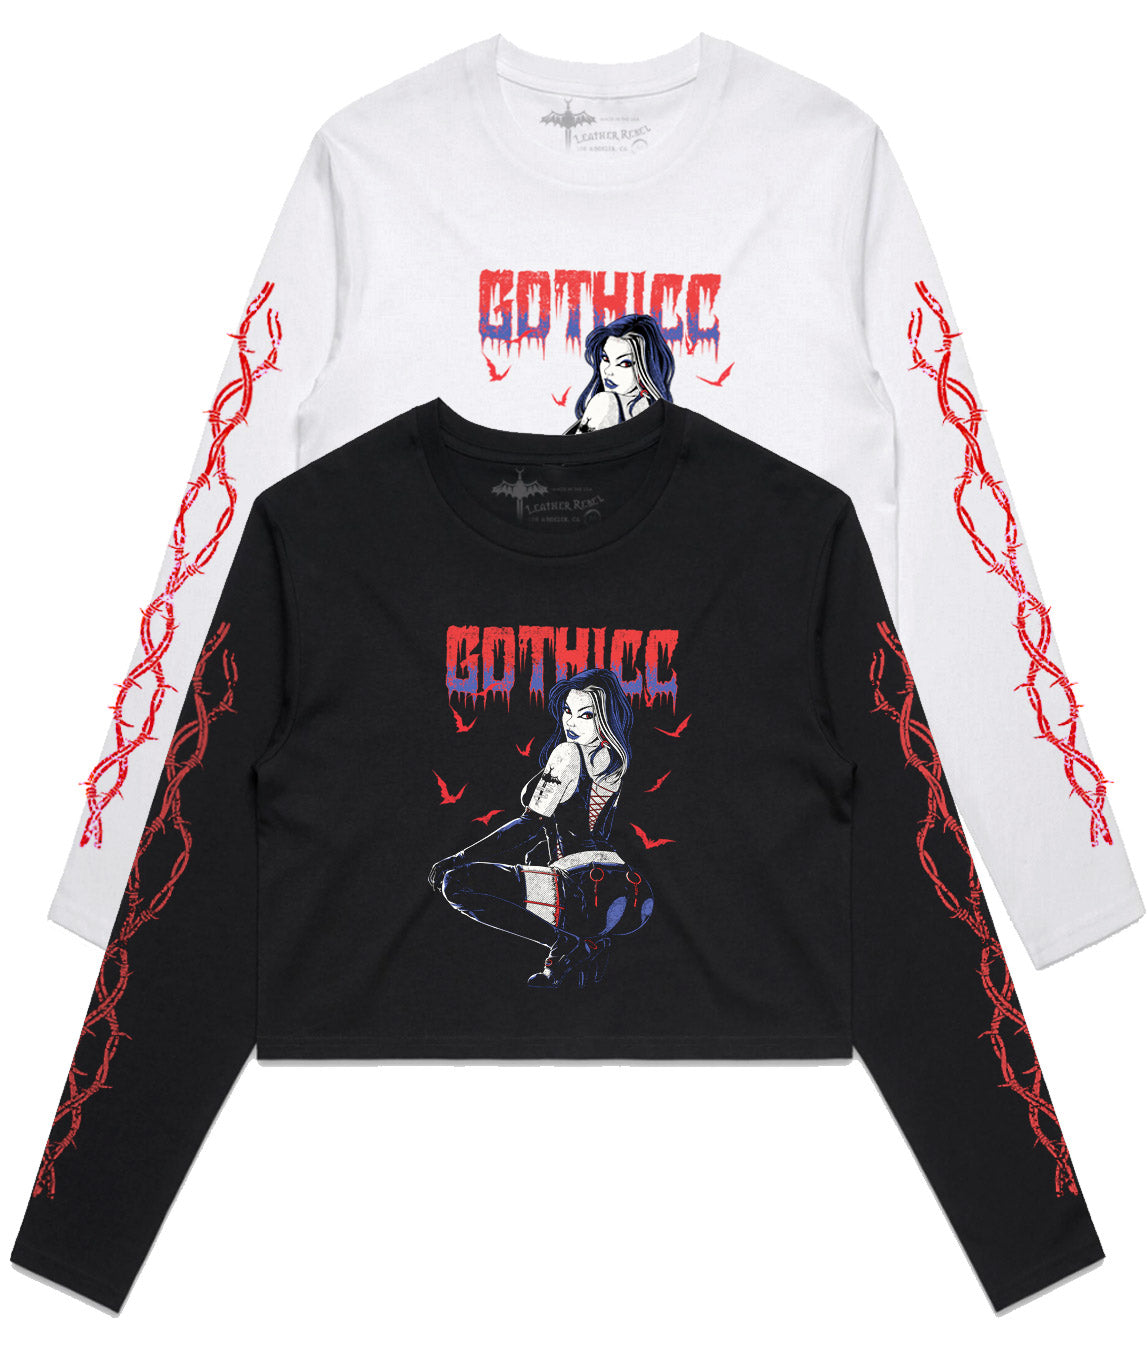 'GOTHICC' Long Sleeve Crop Top